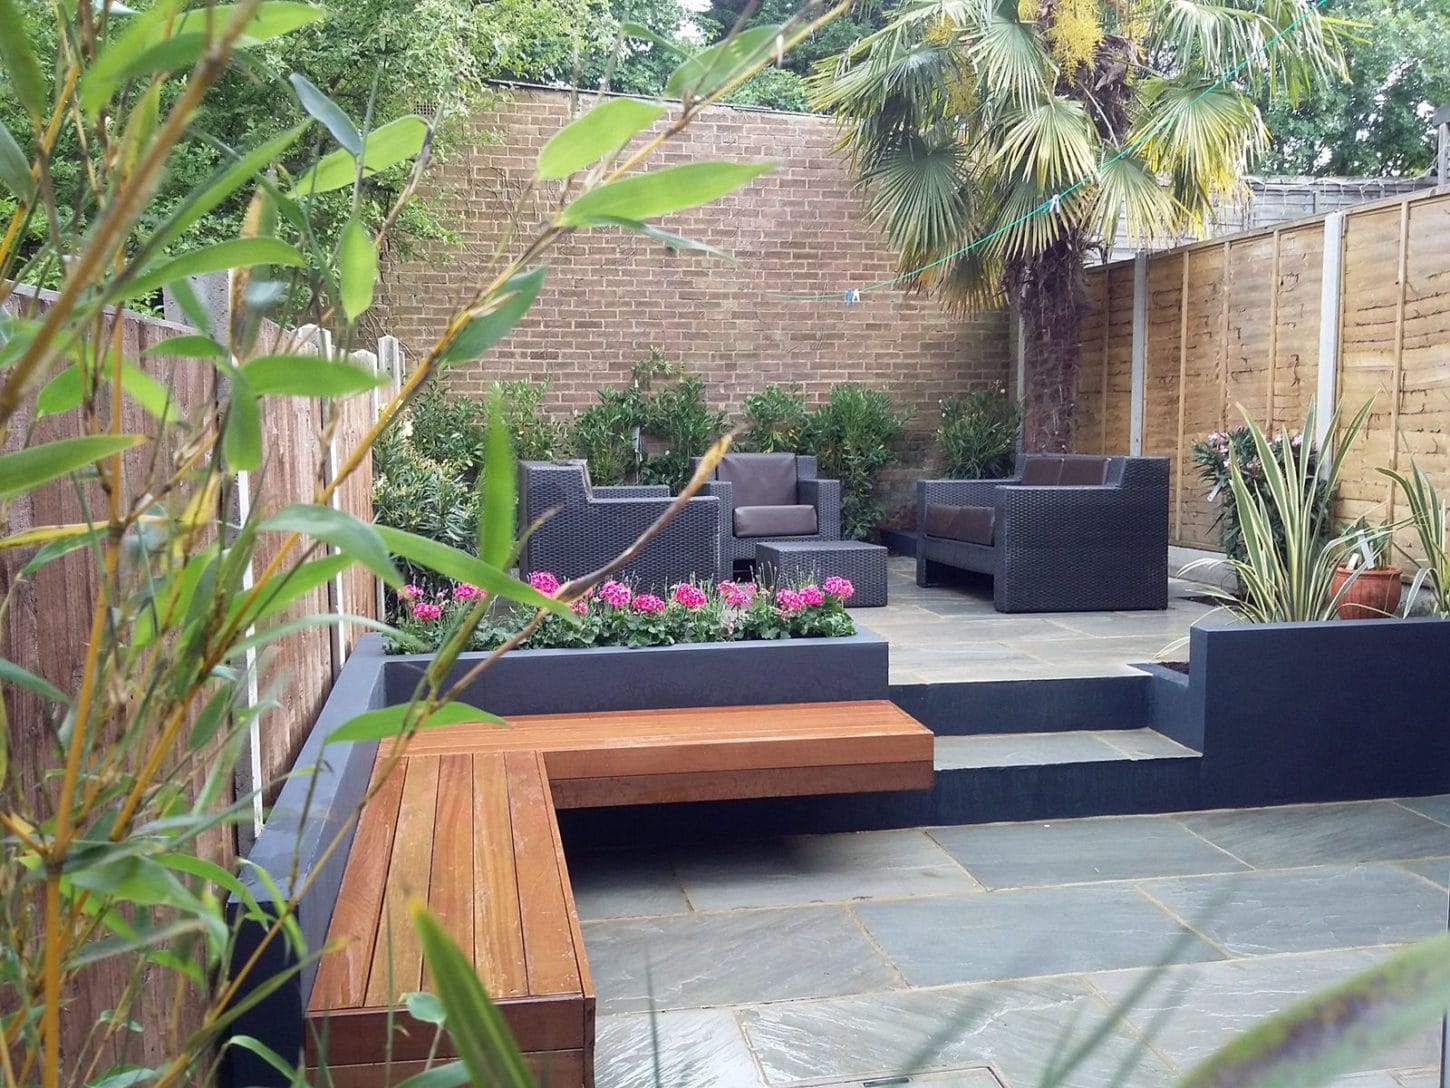 Contemporary patio design ideas photos for Patio garden ideas designs